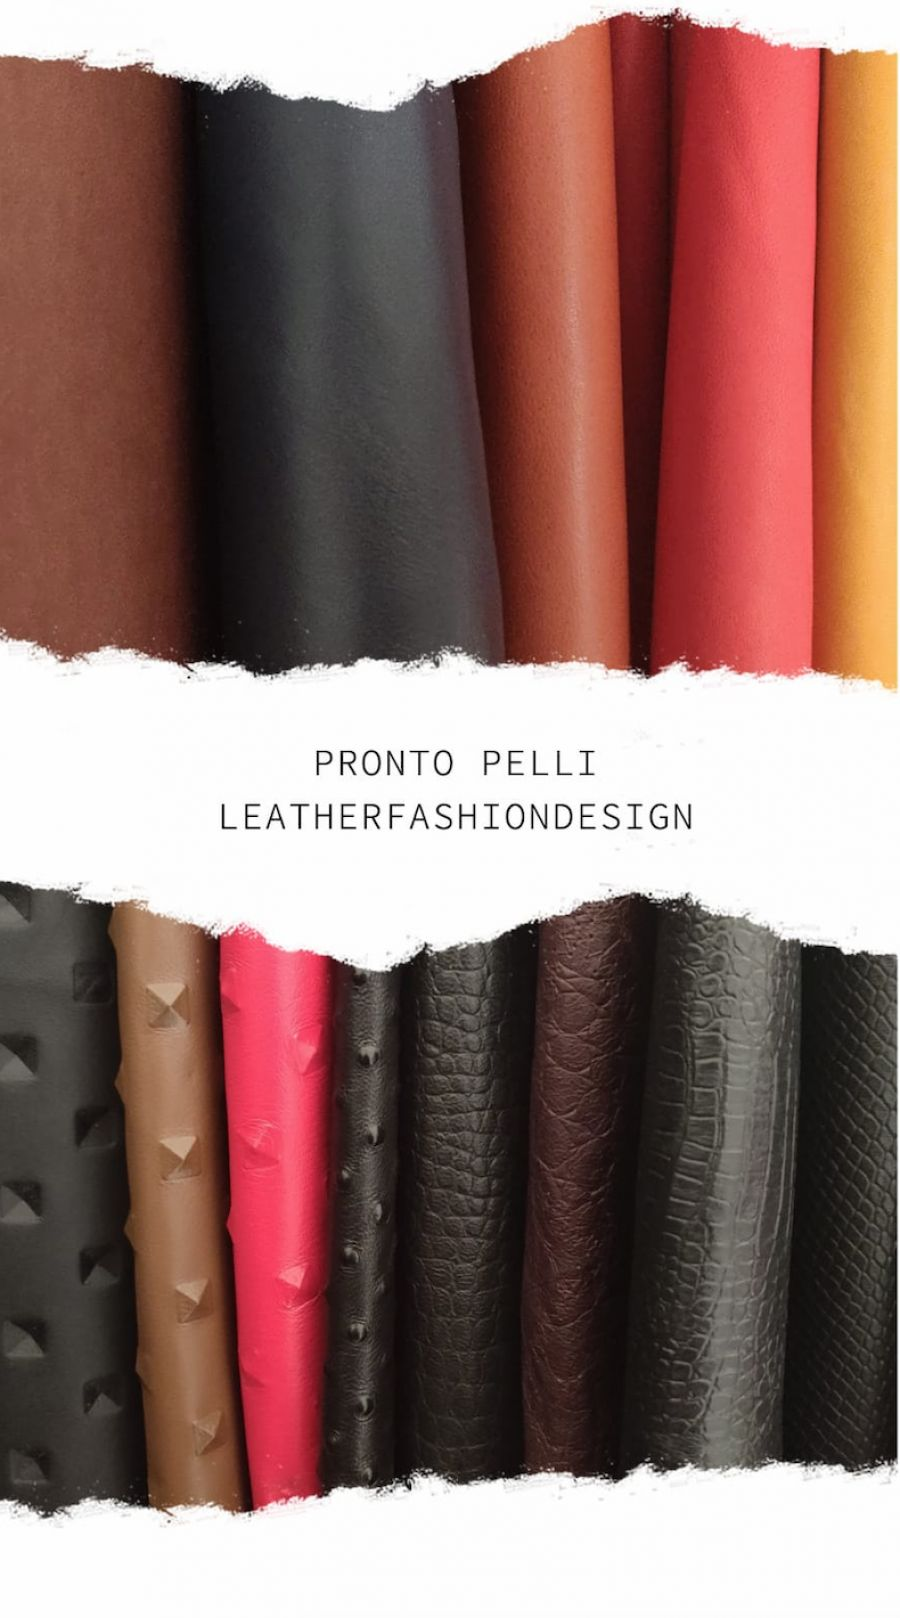 Leather passion